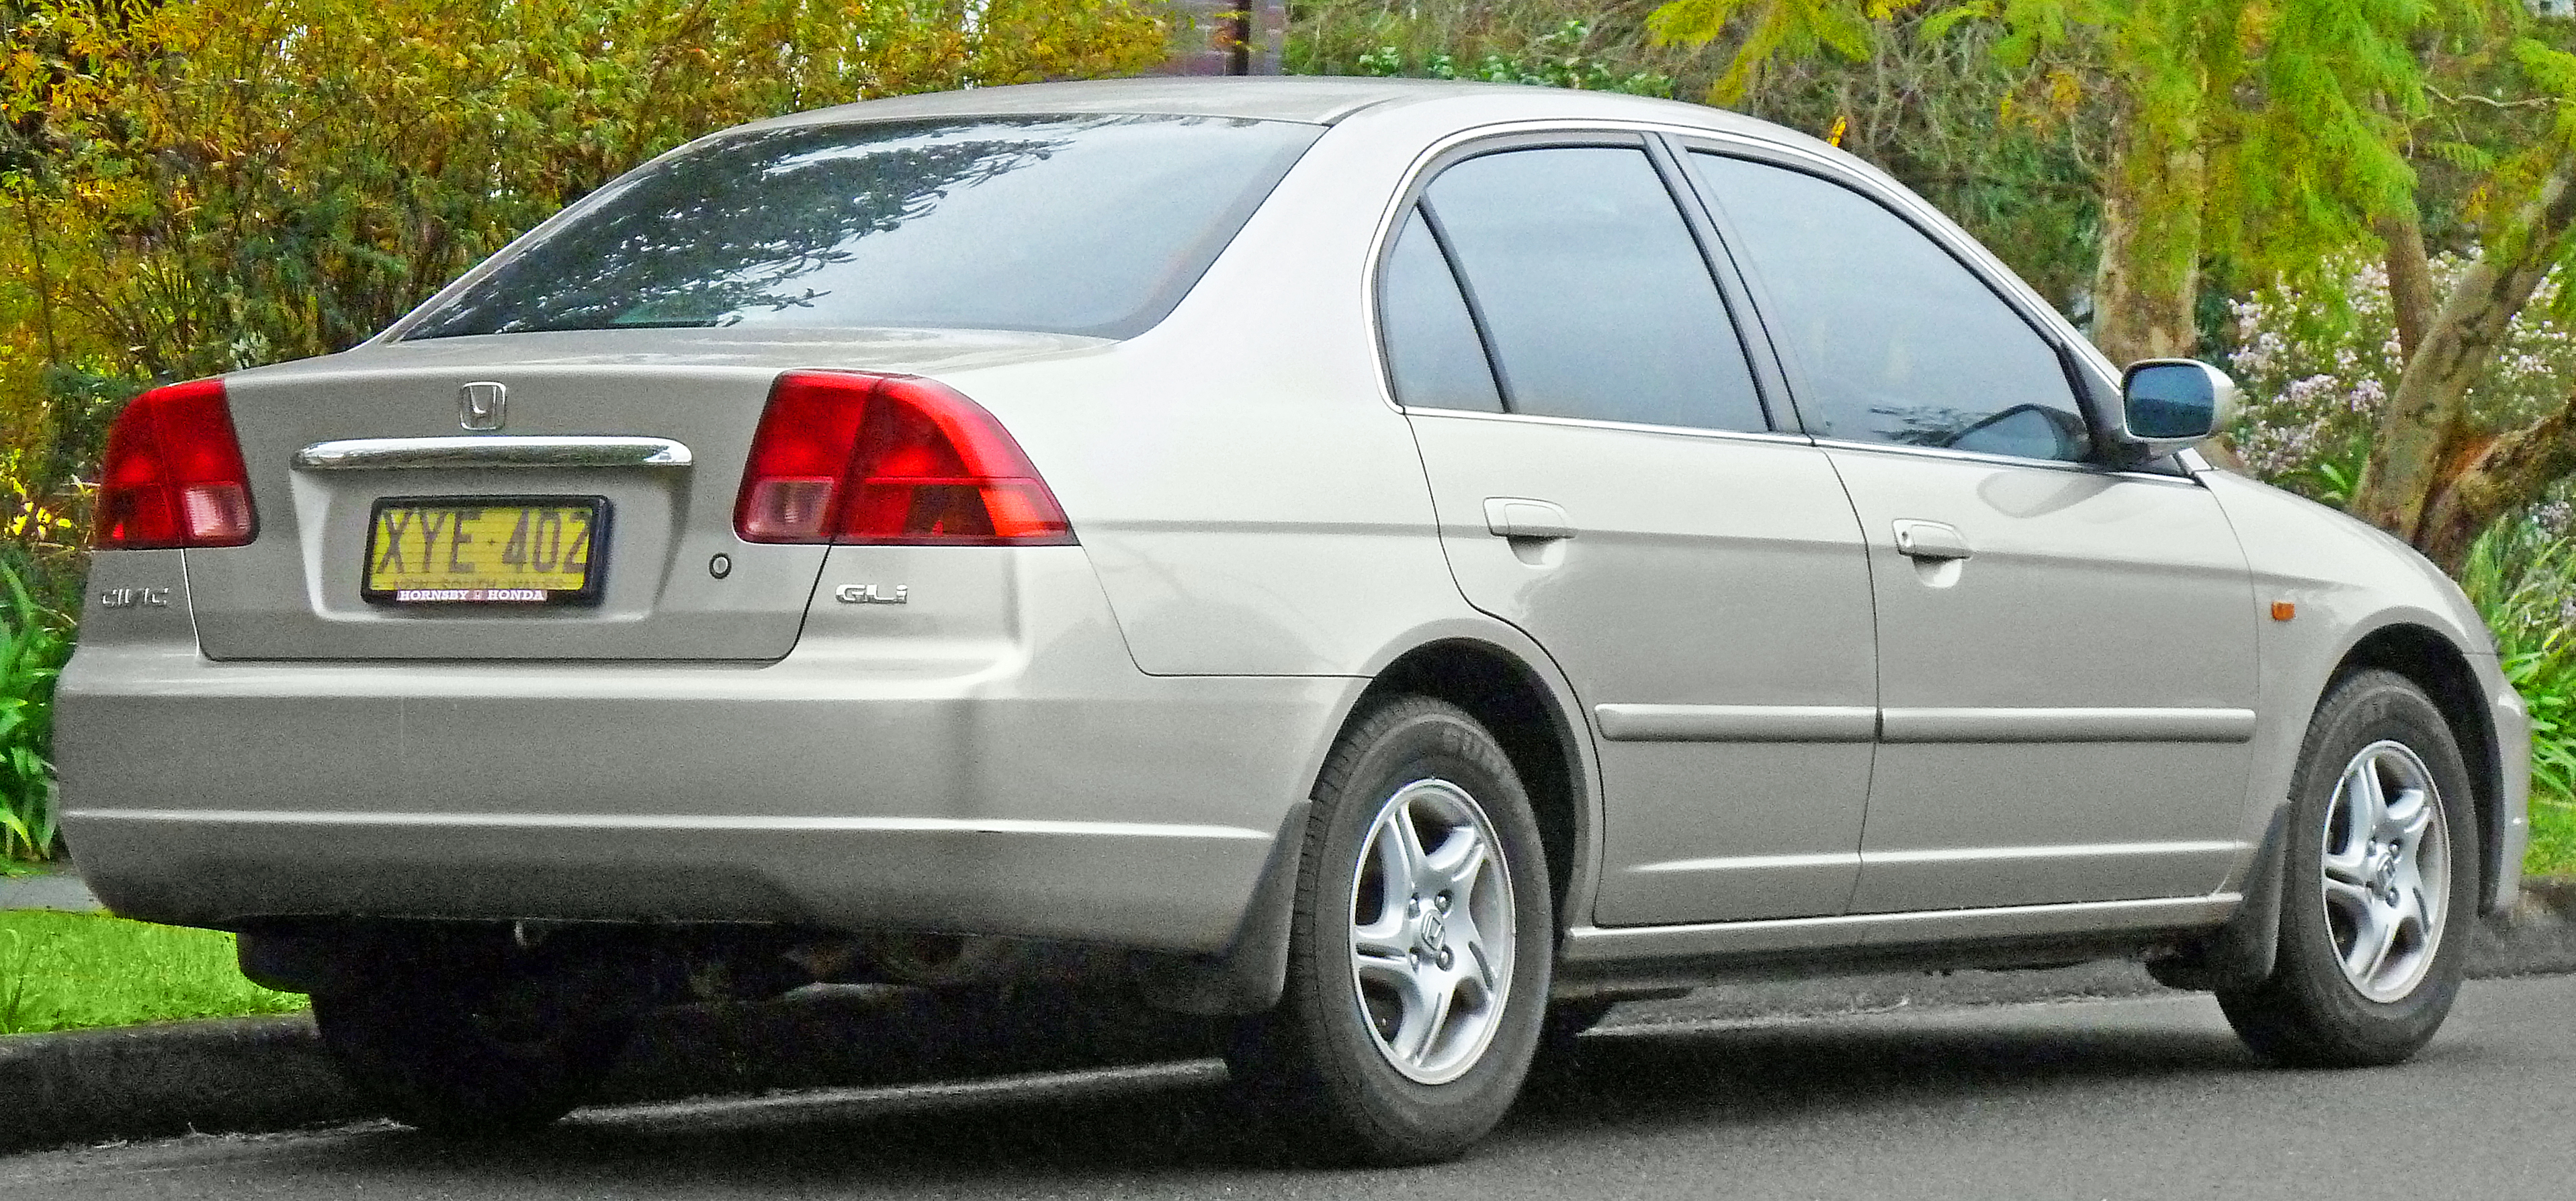 2002 honda civic type s related infomation specifications for Honda in network